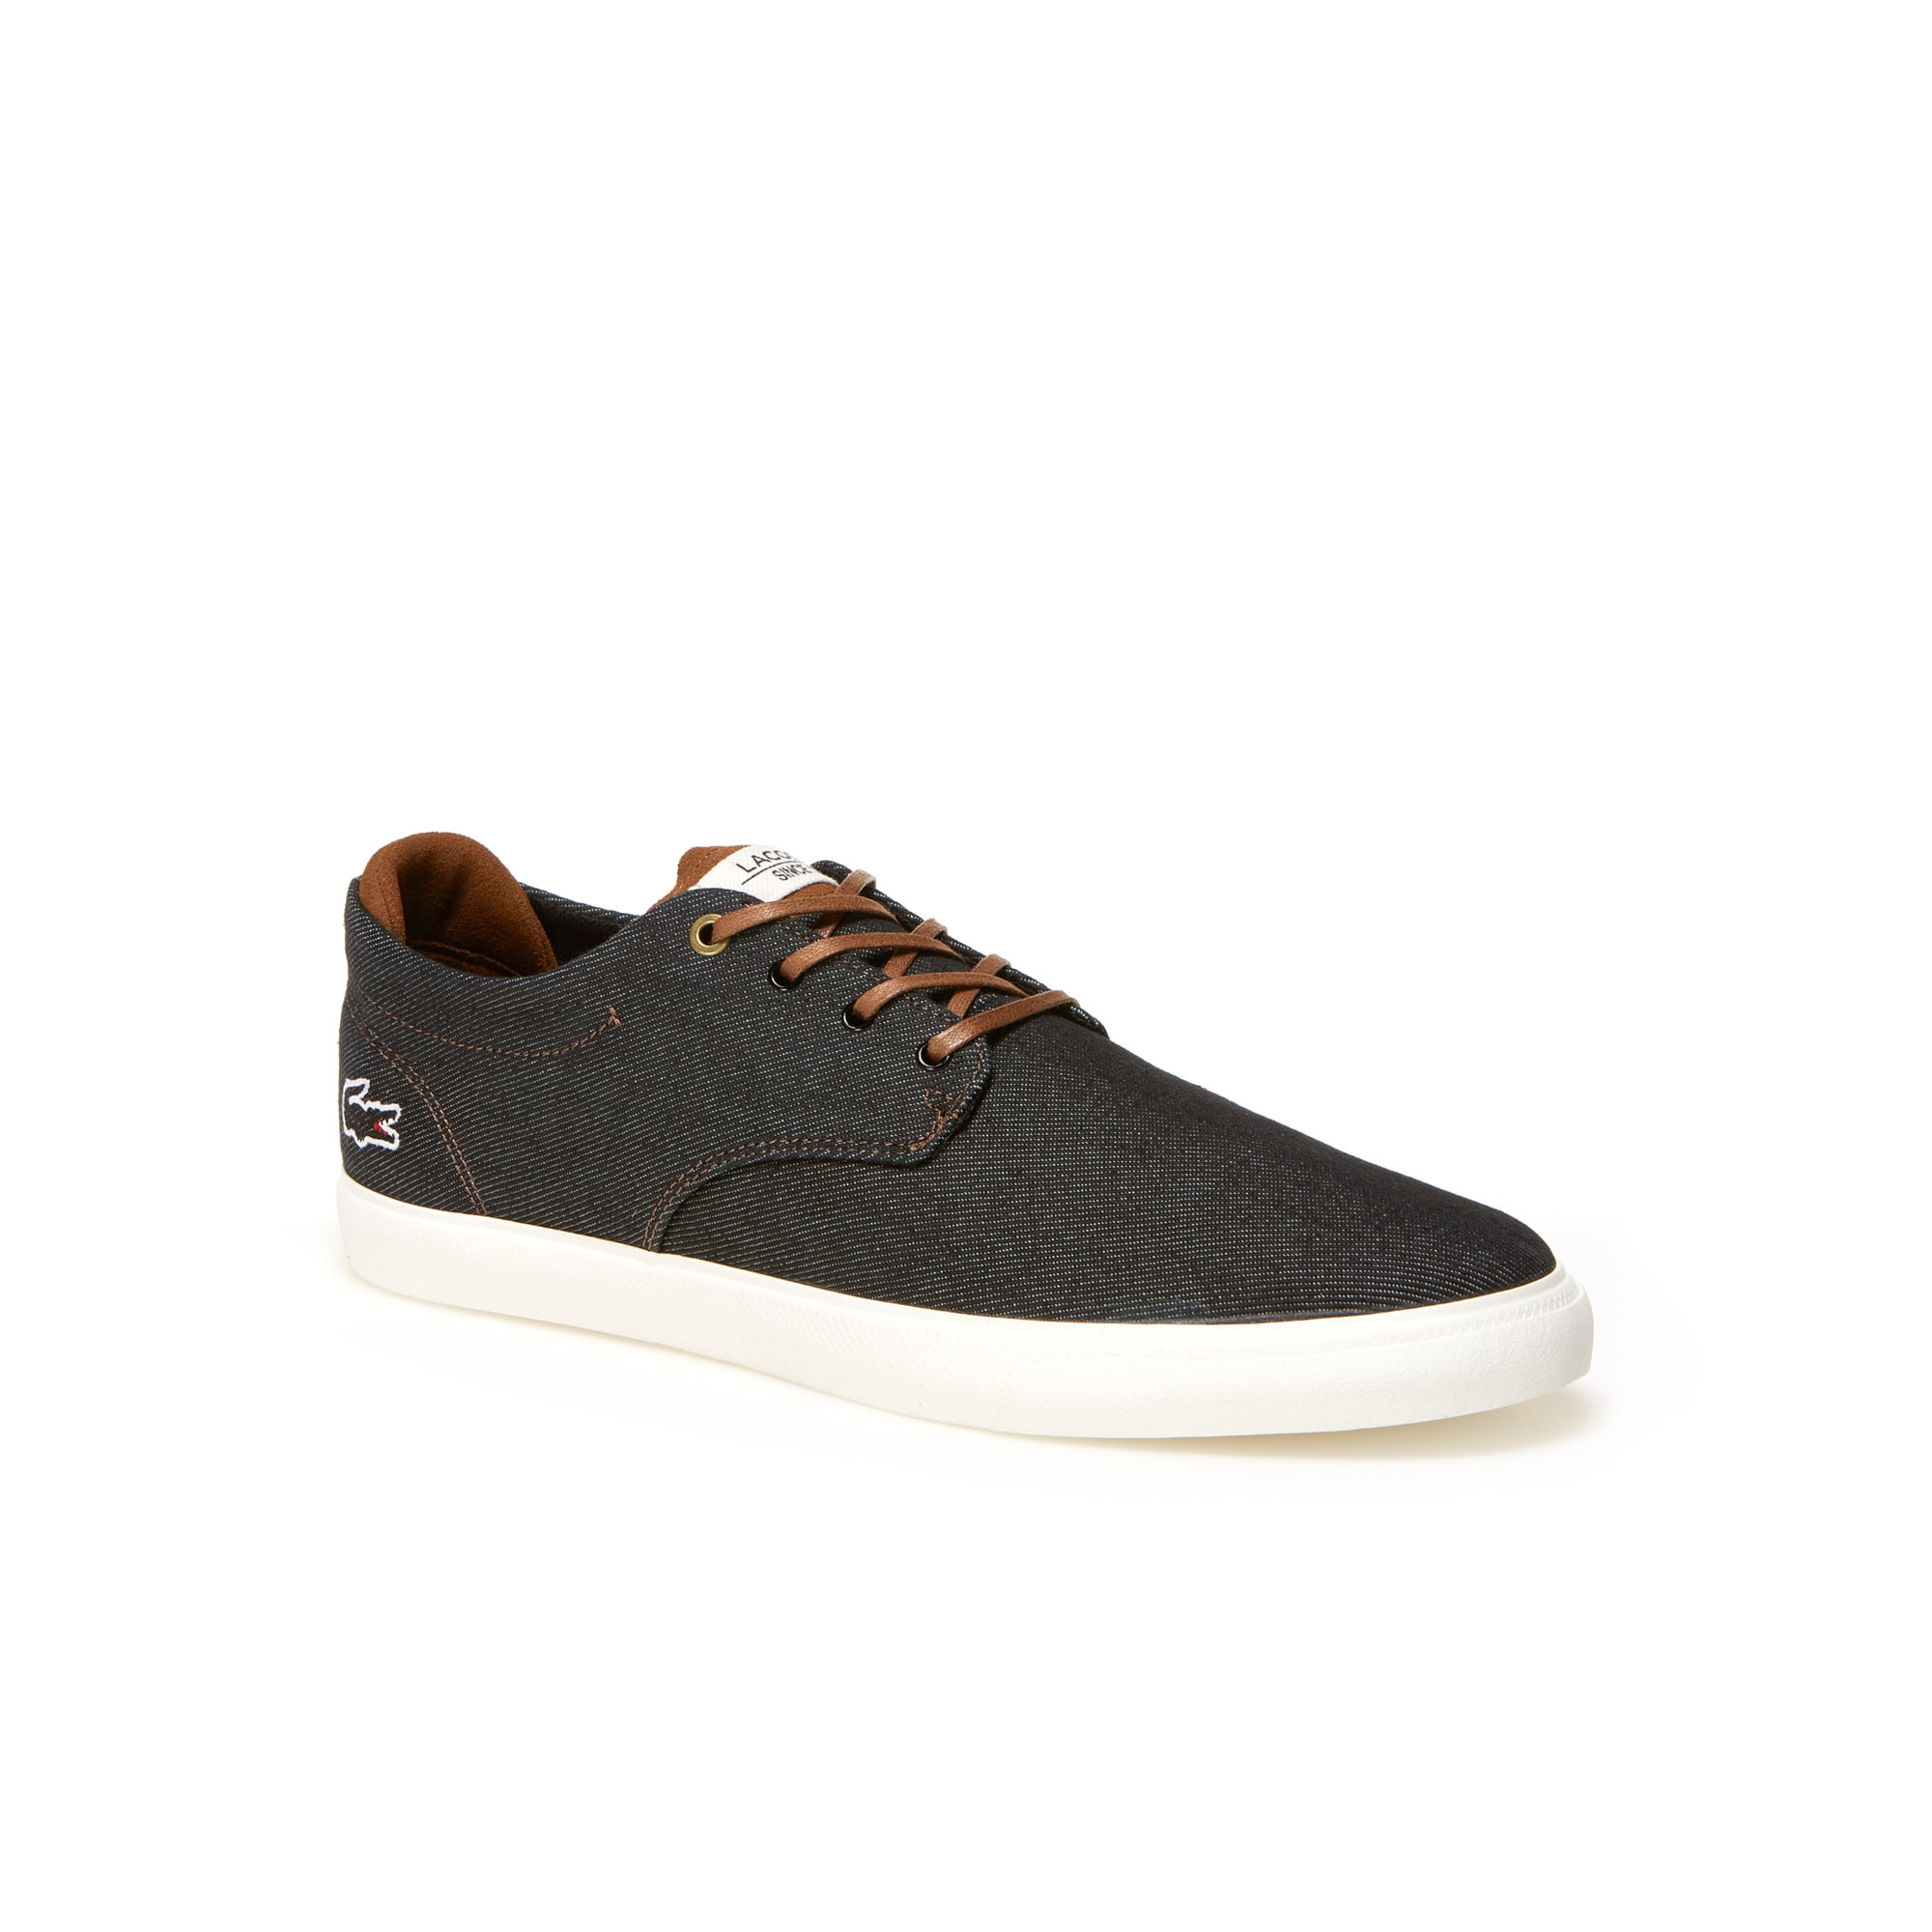 Men's Espere Canvas Trainers